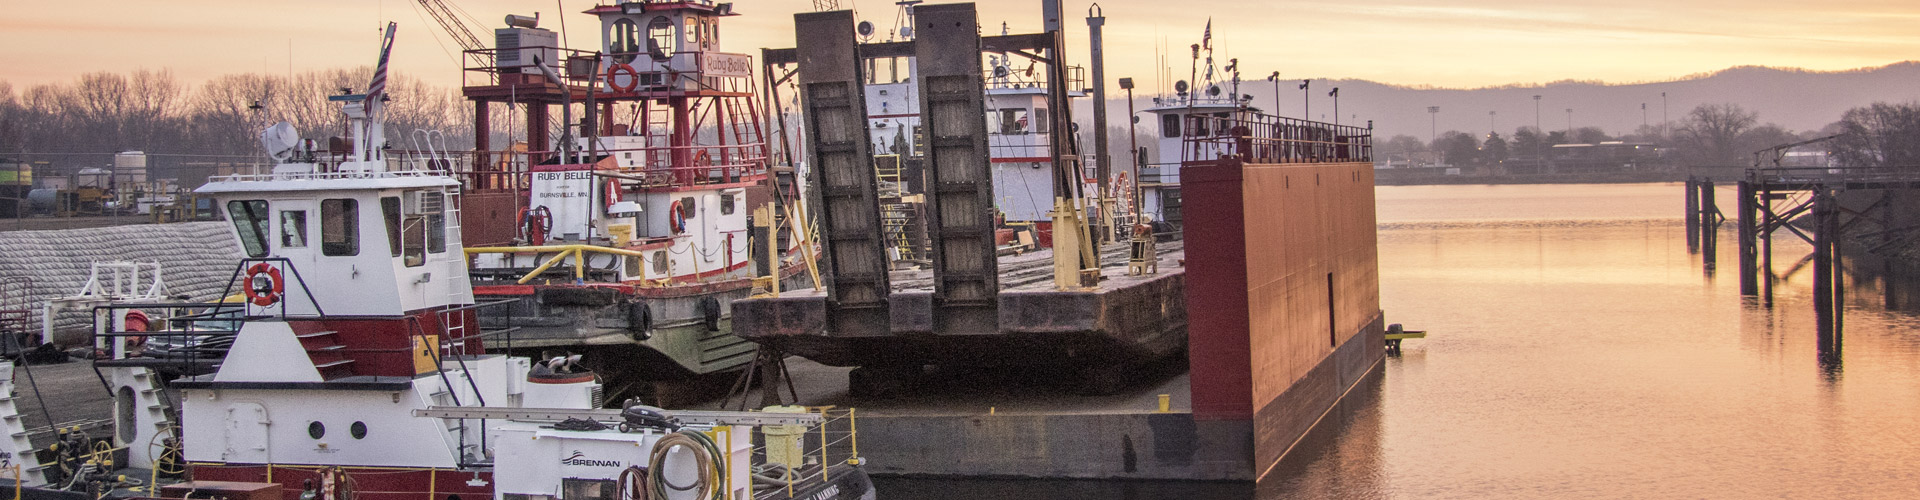 dry dock vessel repairs, inland river services, harbor management services, vessel repairs, dry dock services, upper mississippi river dry dock, barge repairs, towboat repairs, steamboat repairs